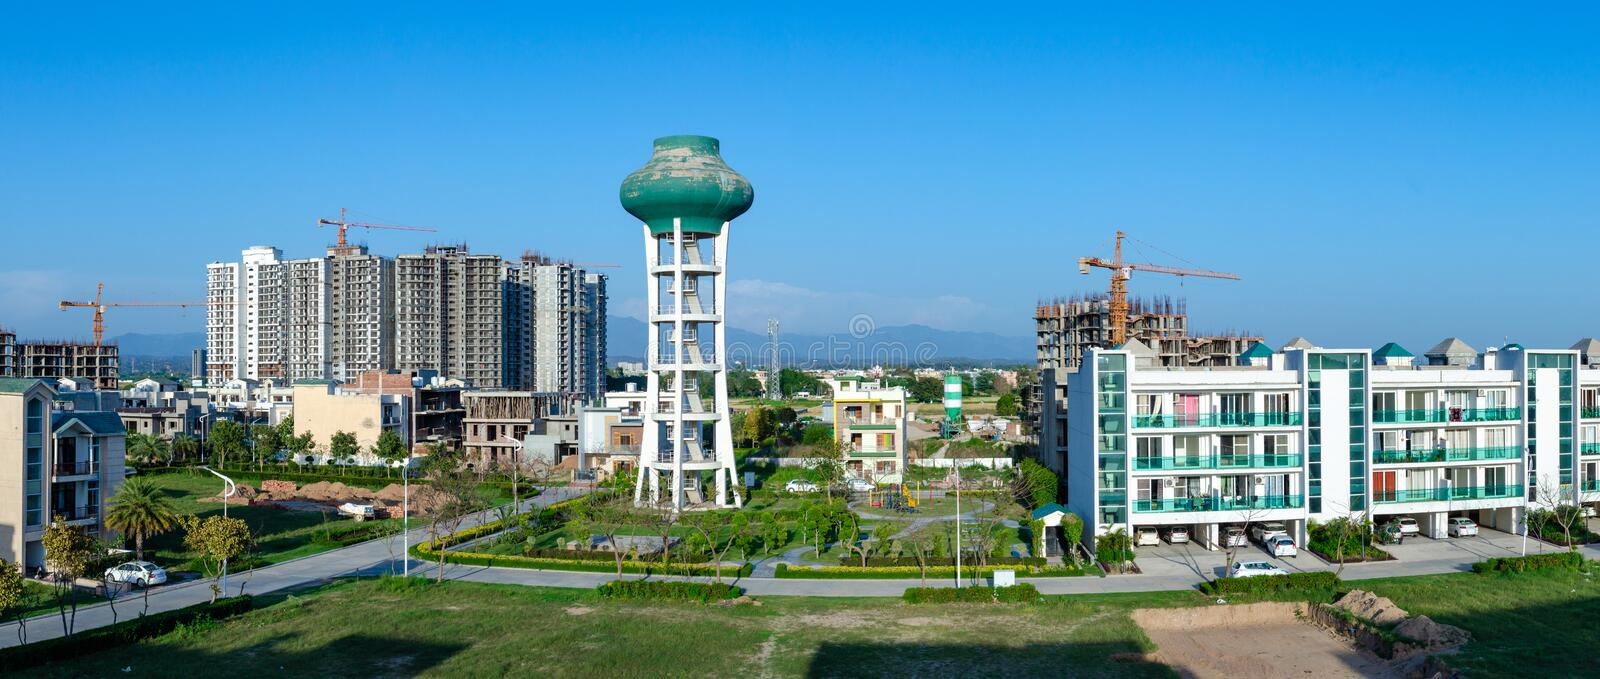 Panoramic View of Residential Society. India royalty free stock image